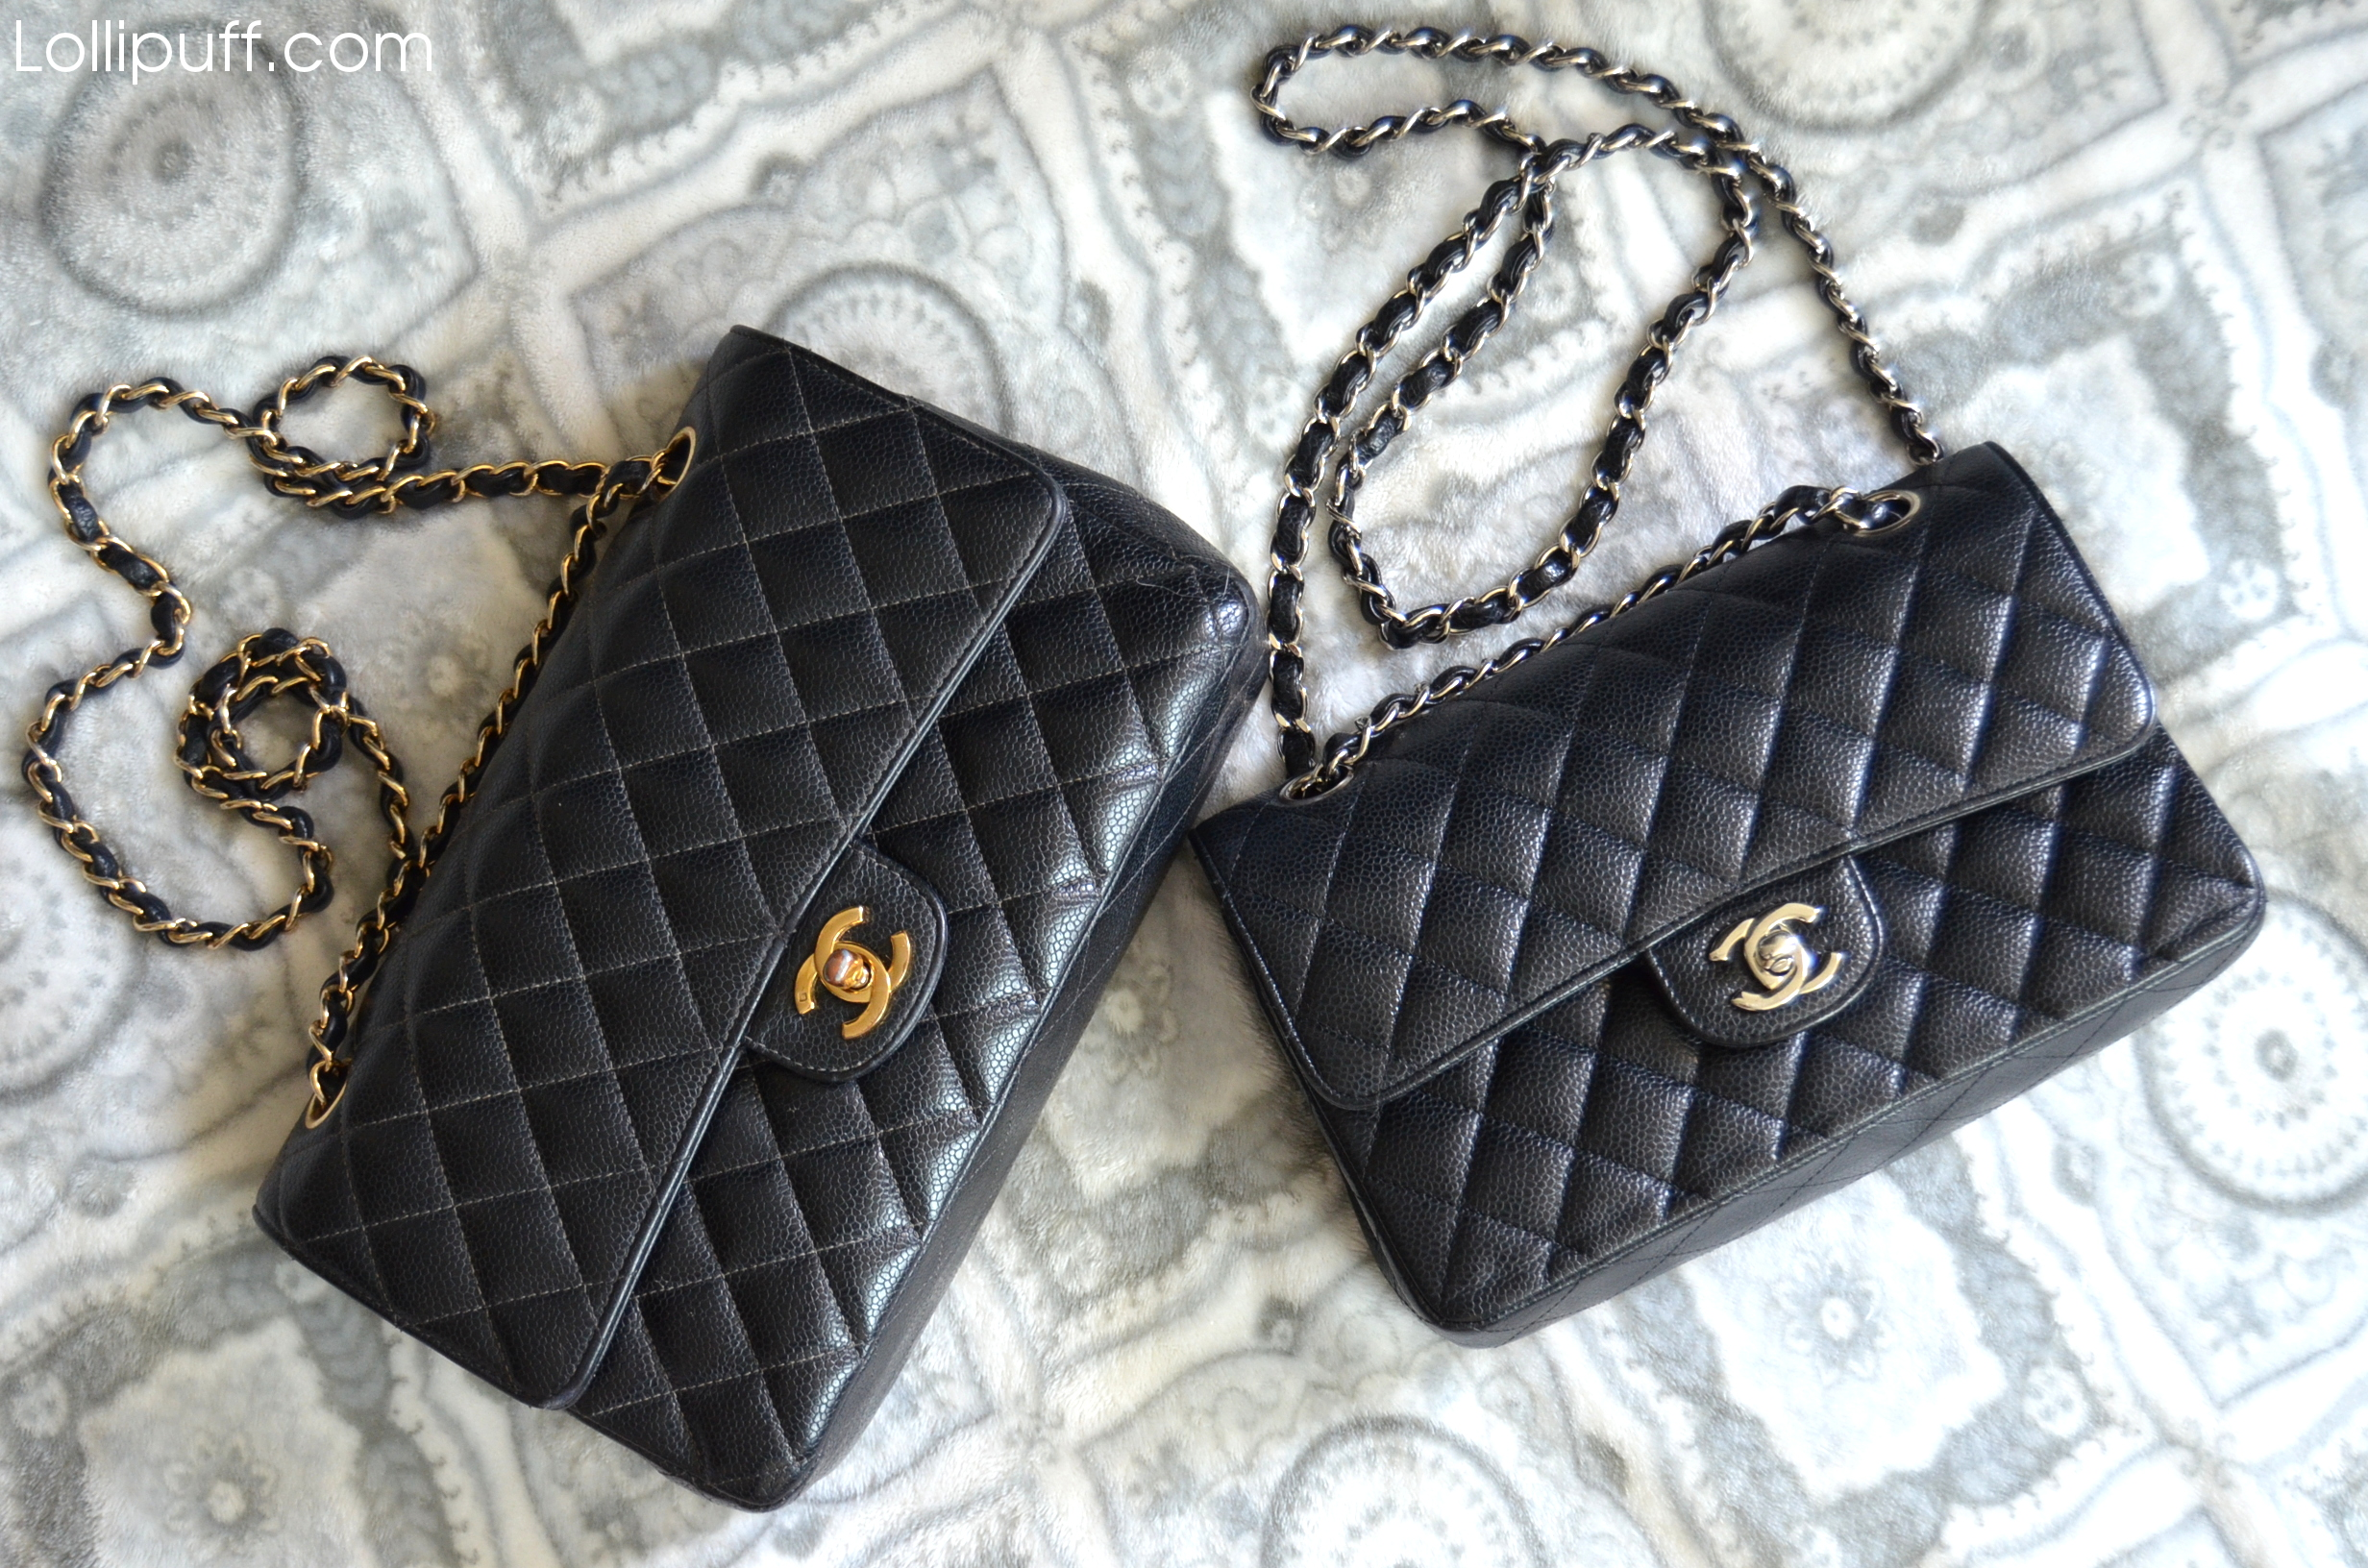 2 chanel classic double flap bags caviar leather